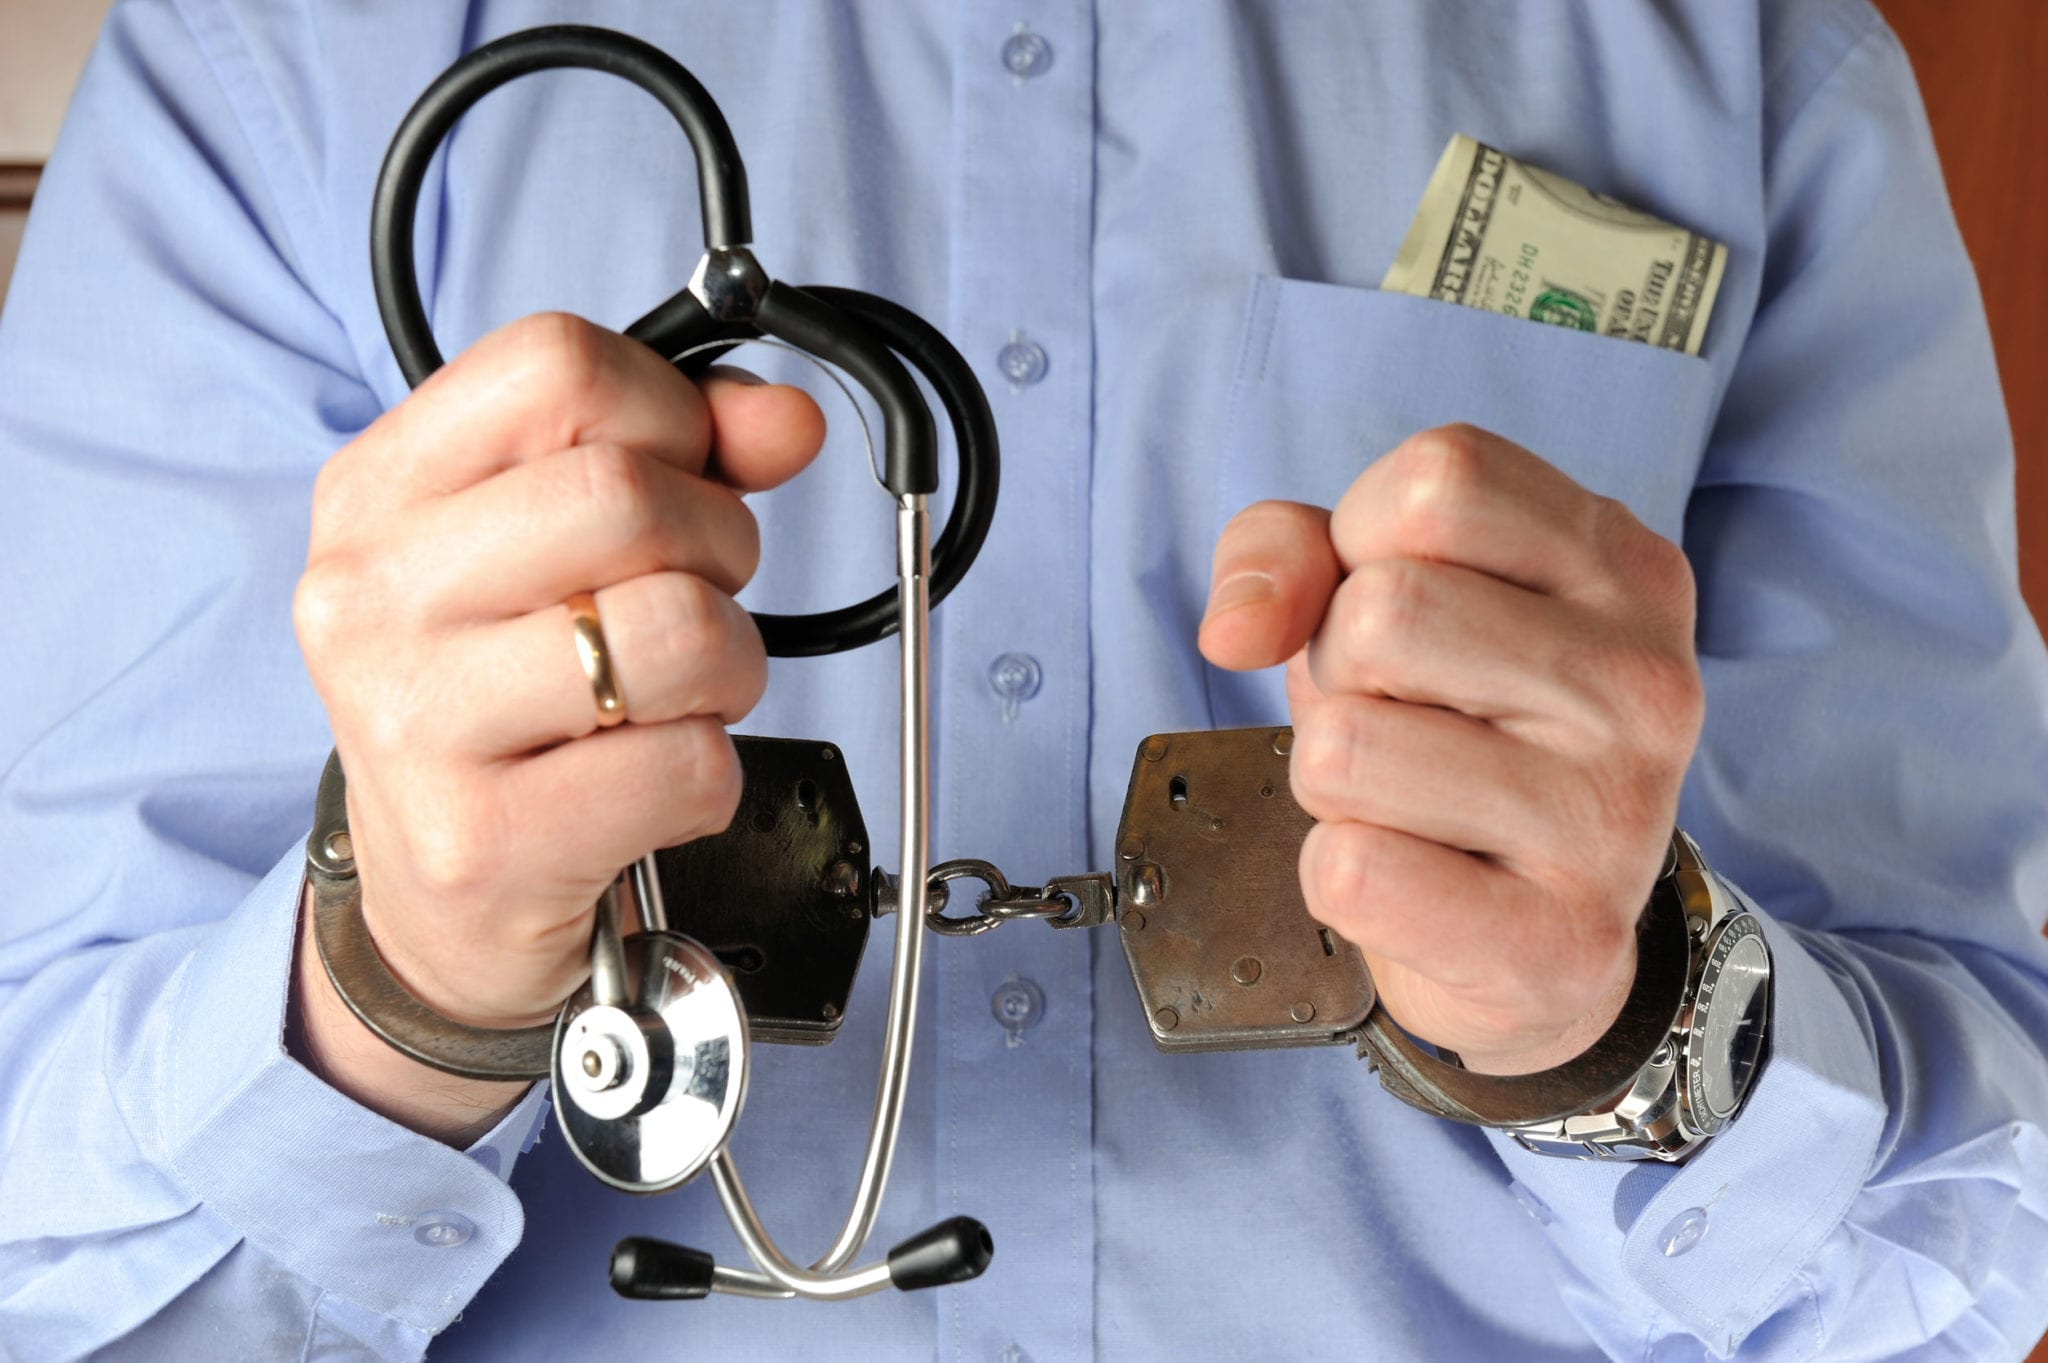 Texas Healthcare Fraud Attorney